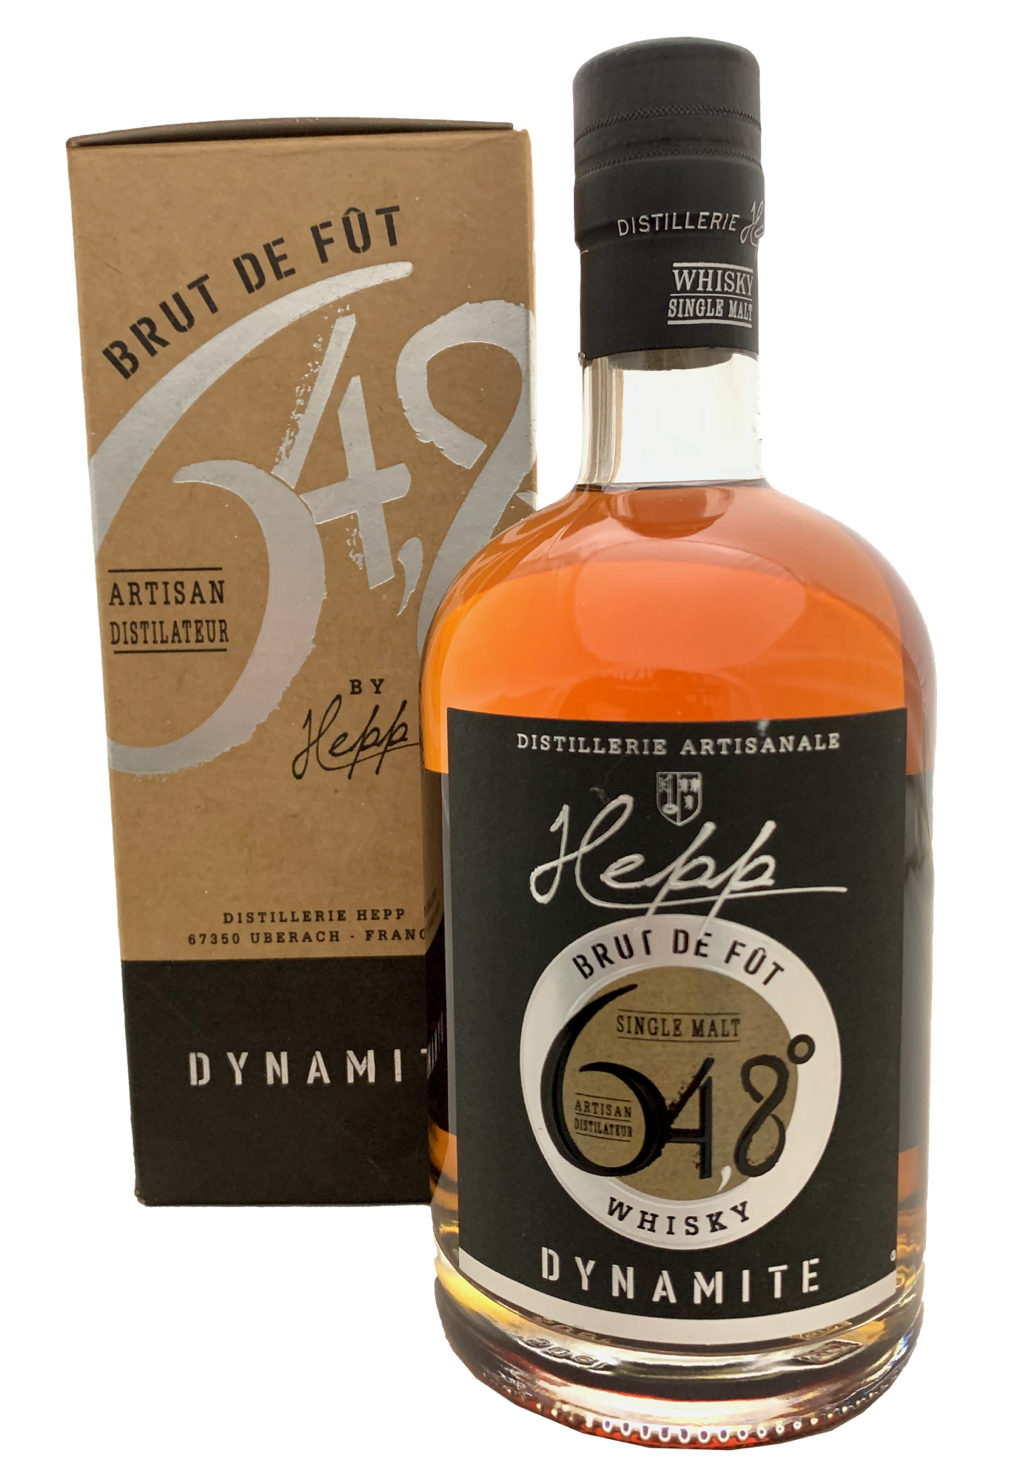 Distillerie Hepp Single Malt Whiskey Dynamite Brut de Fût 64,8%